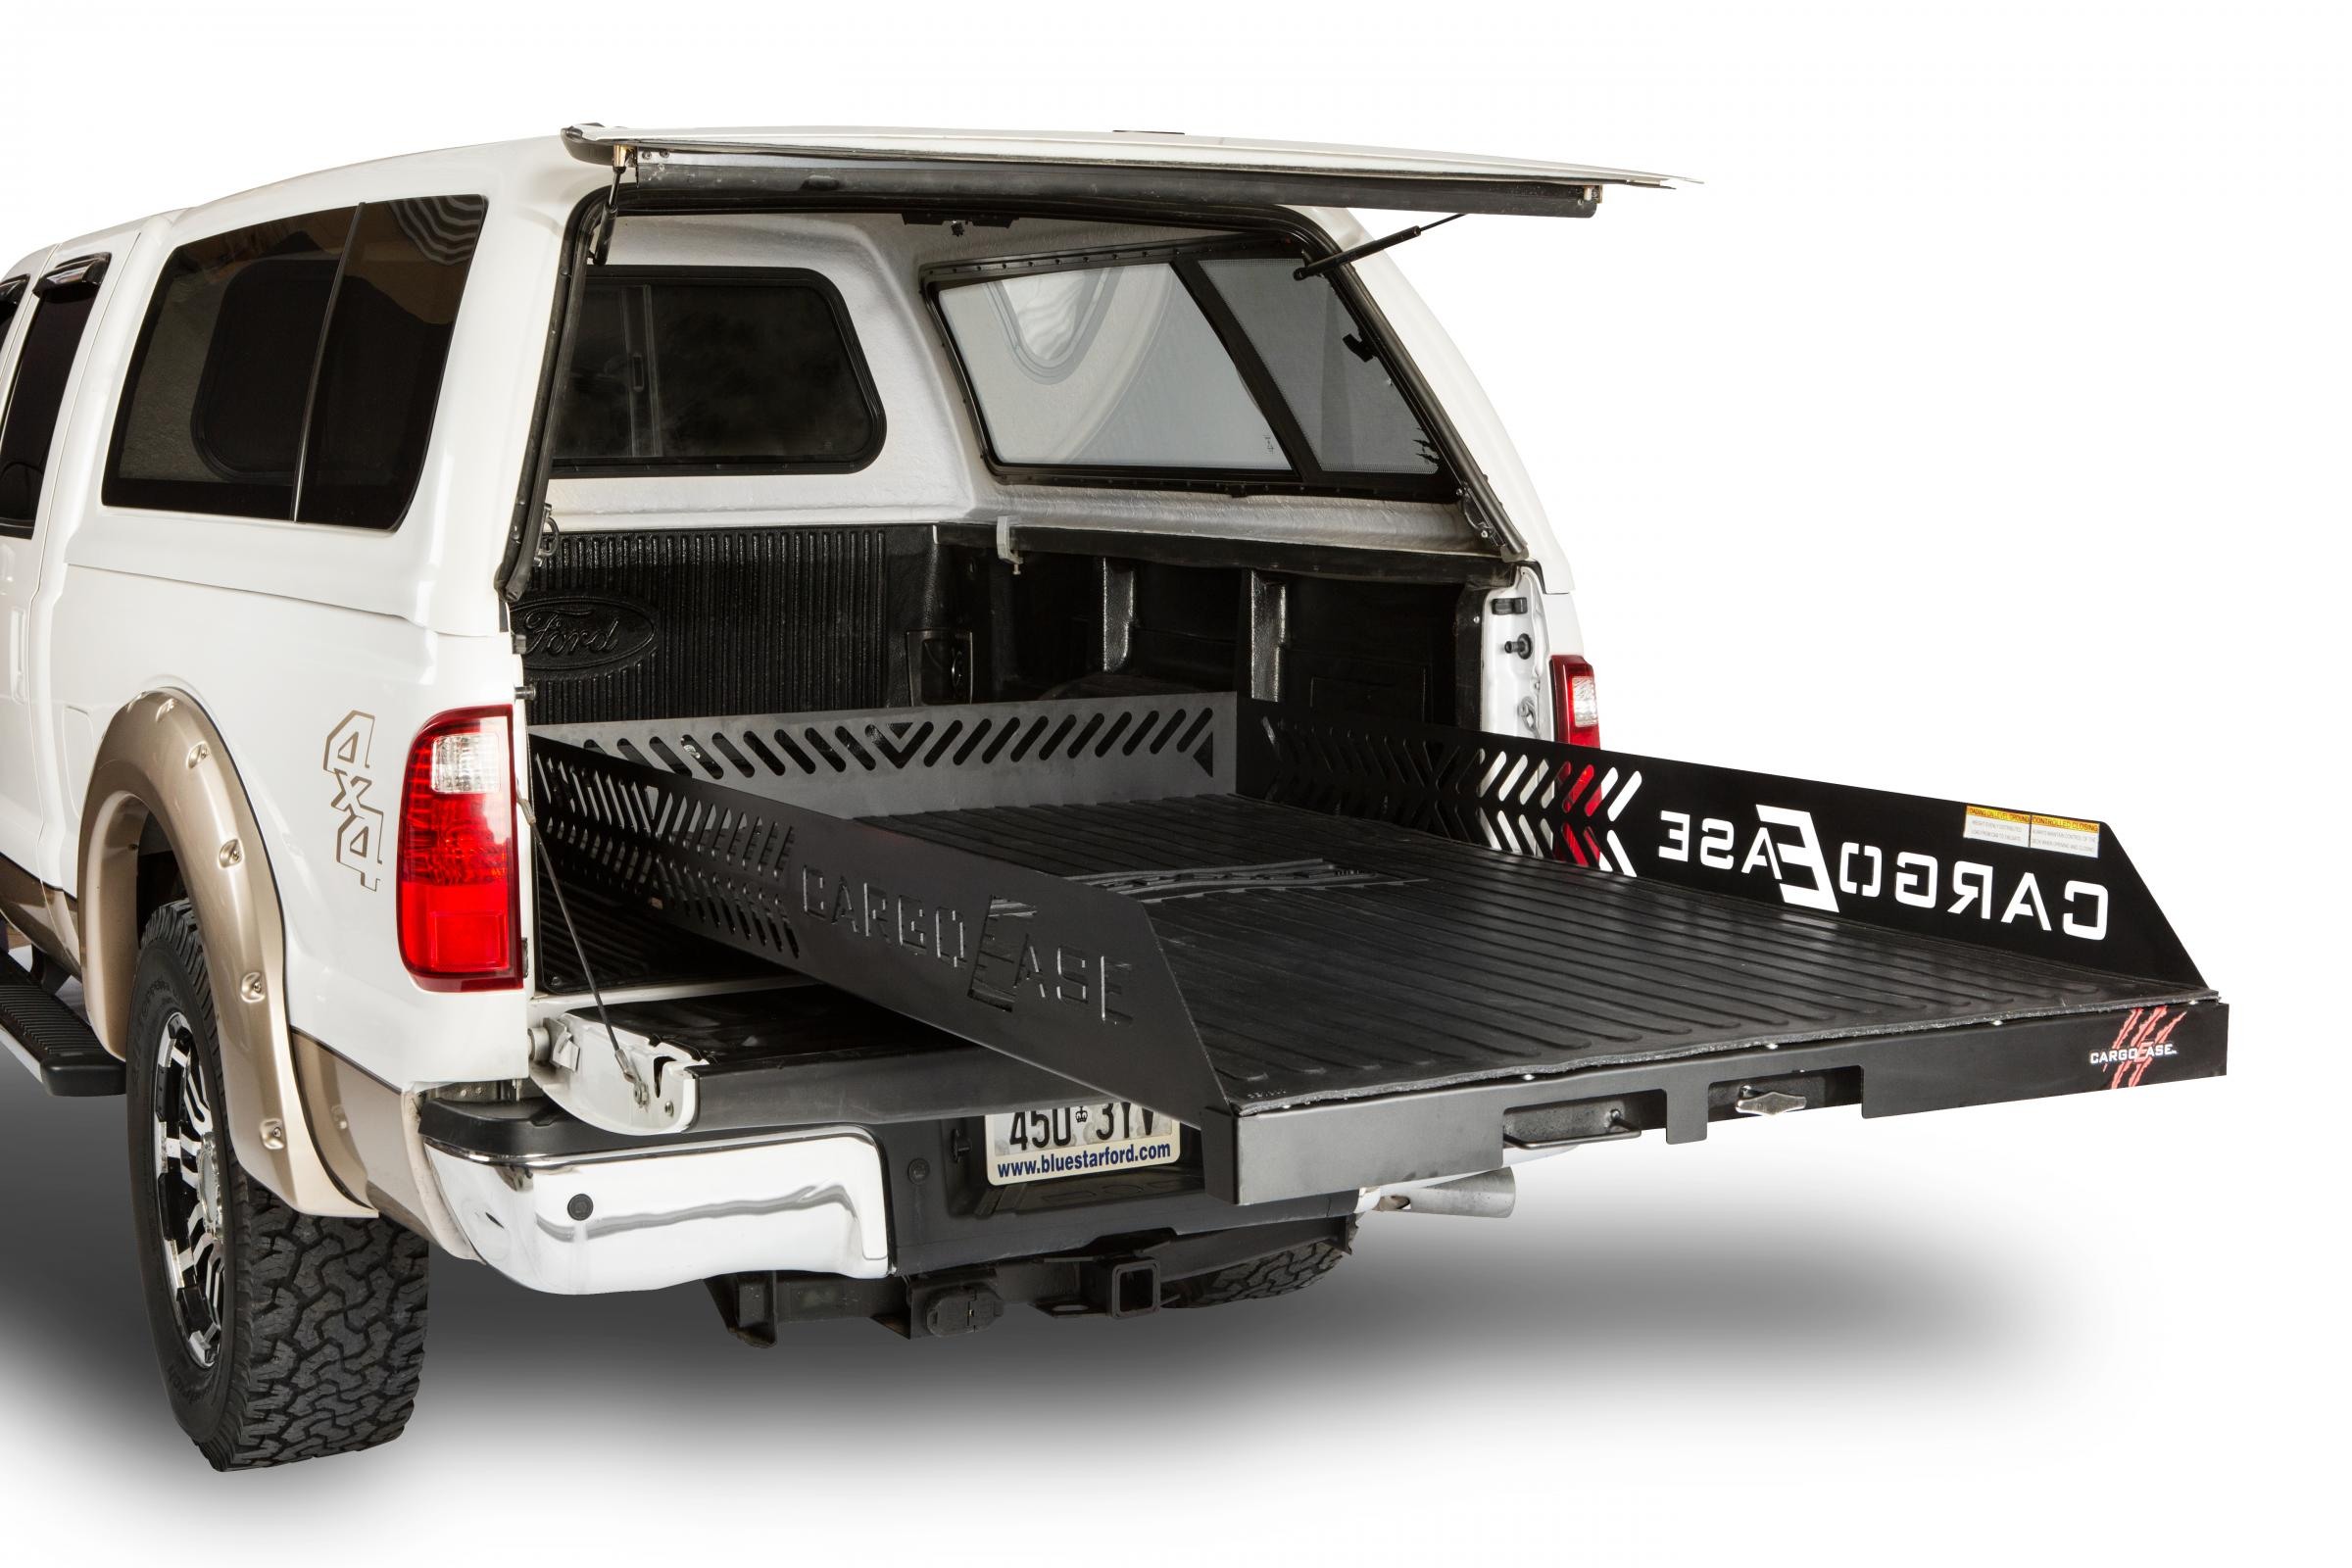 CE9548C20 Cargo Ease Bed Slide 2000 Pound Capacity